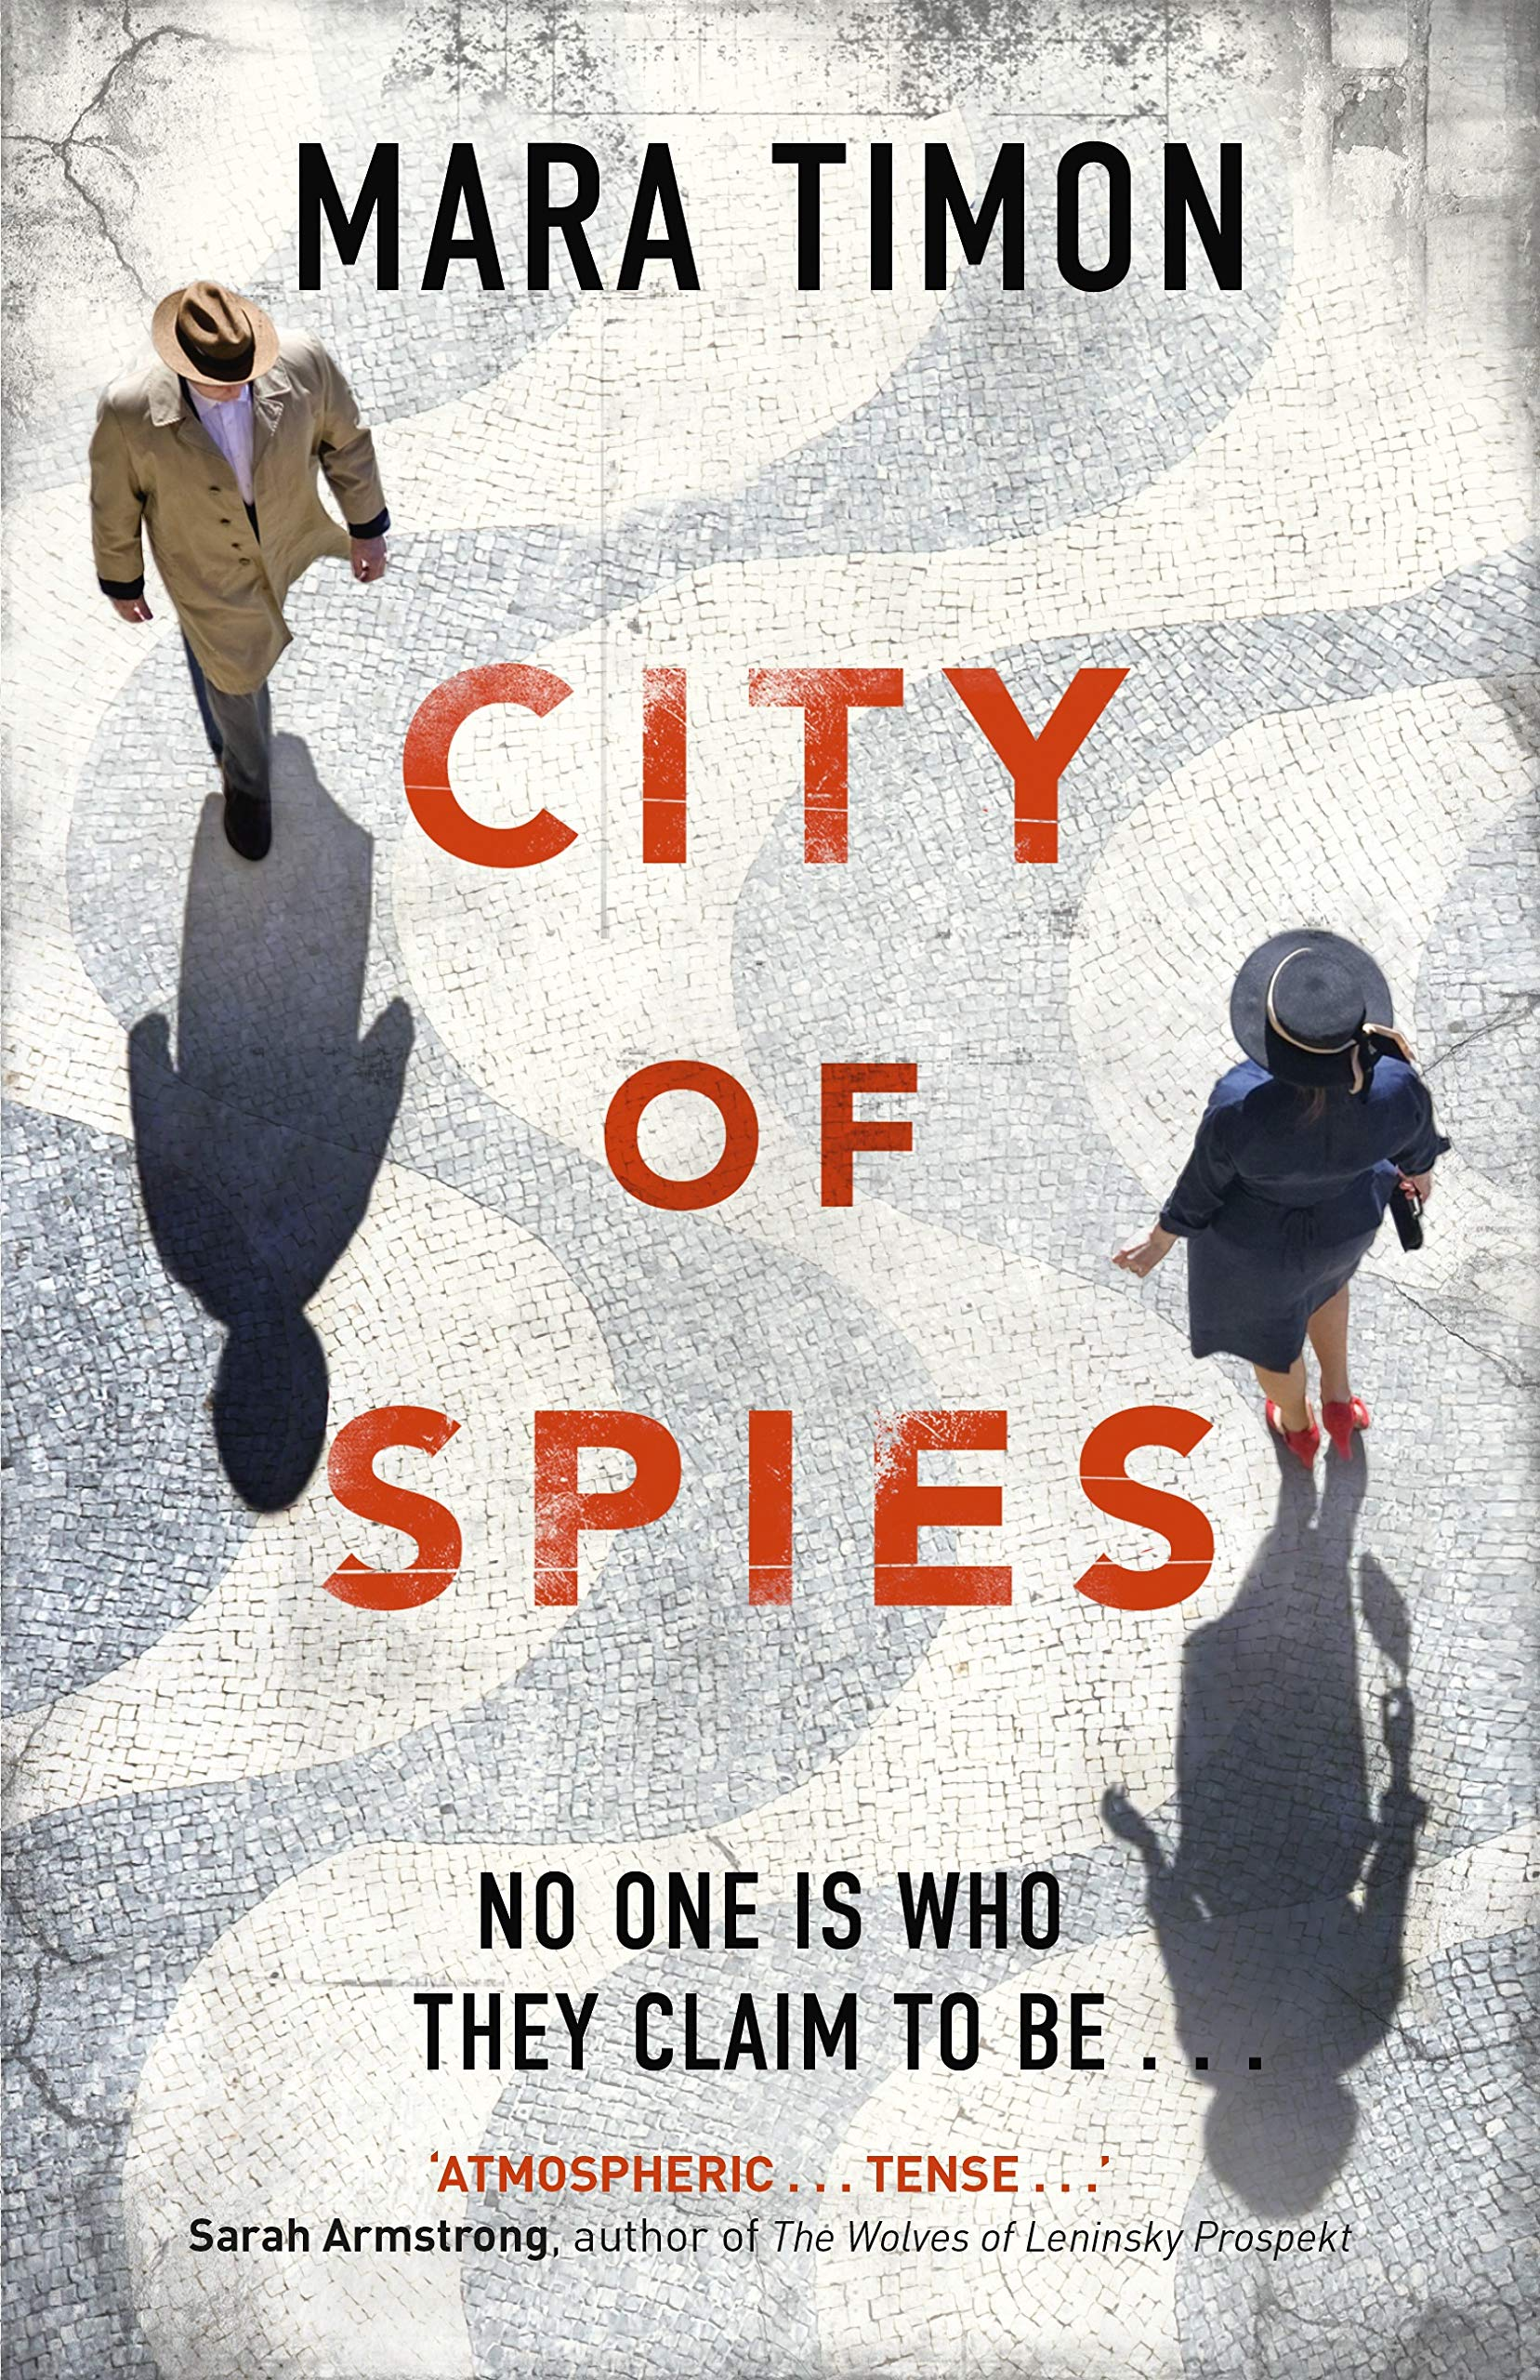 Mara Timon's City of Spies was published very recently in 2020.